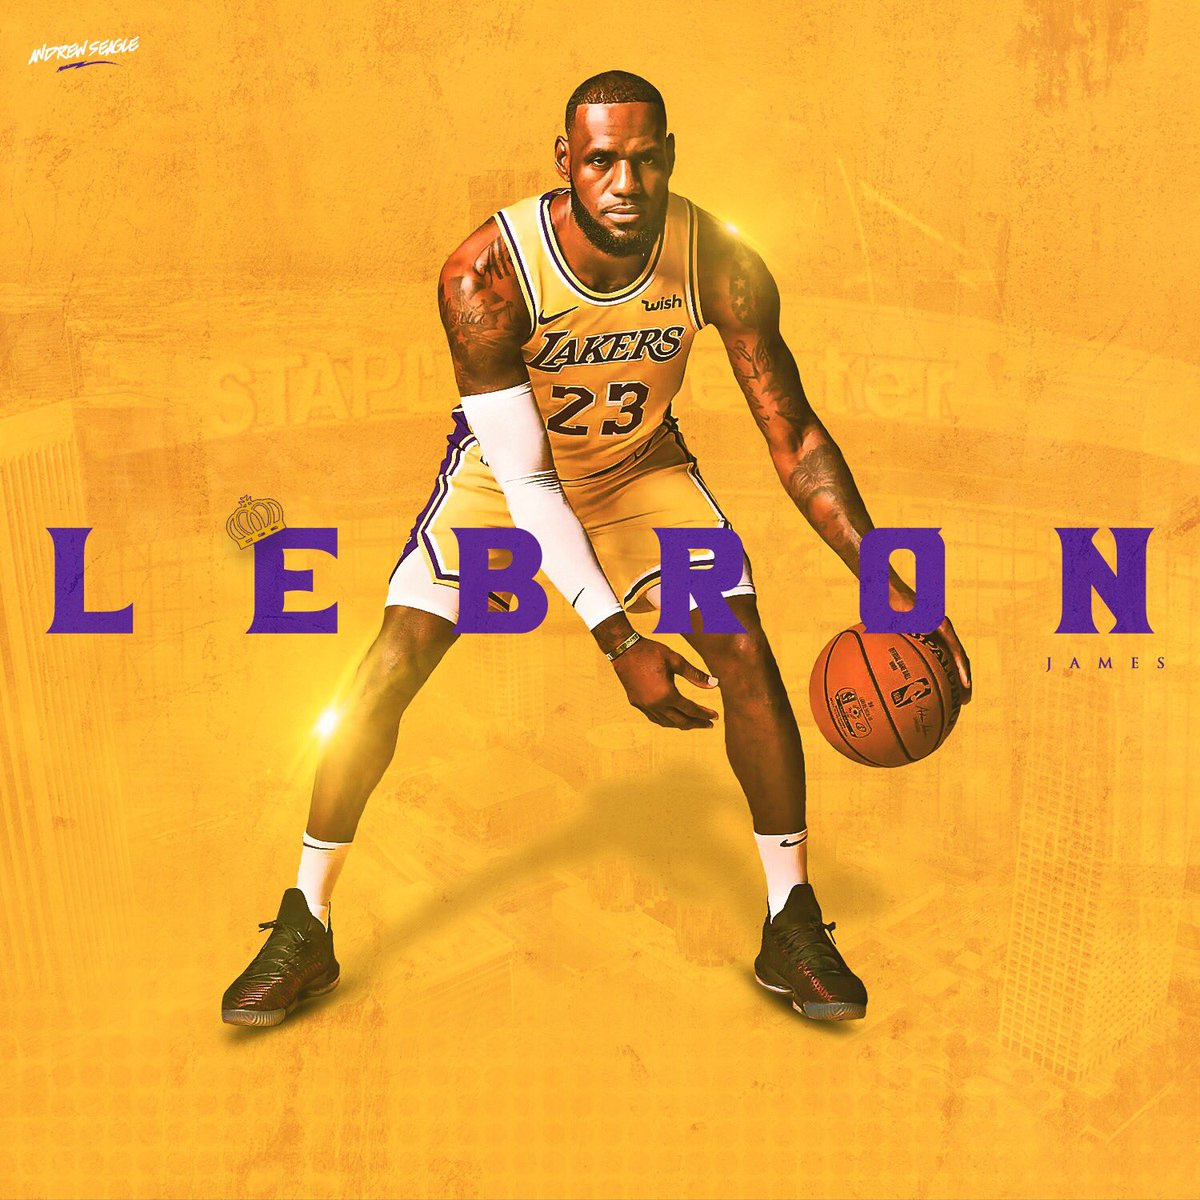 Lebron James Lakers Wallpaper Posted By Samantha Thompson